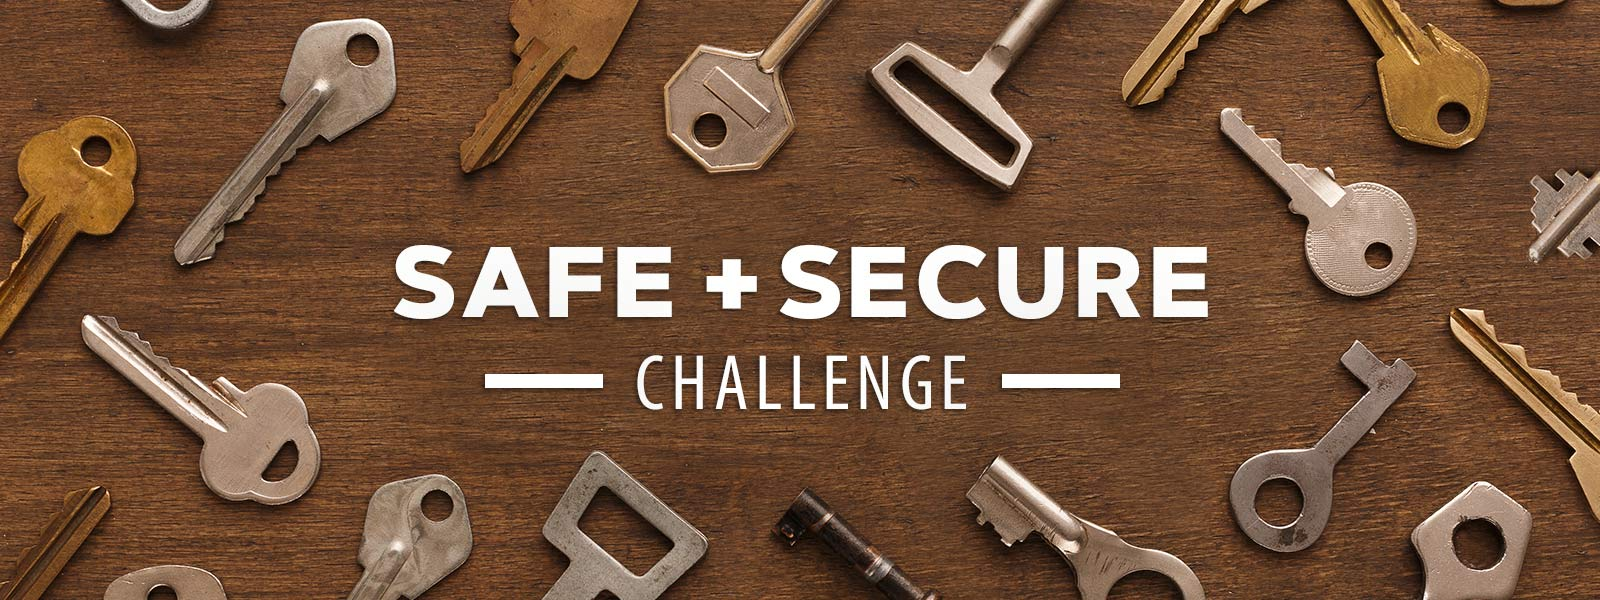 Safe and Secure Challenge